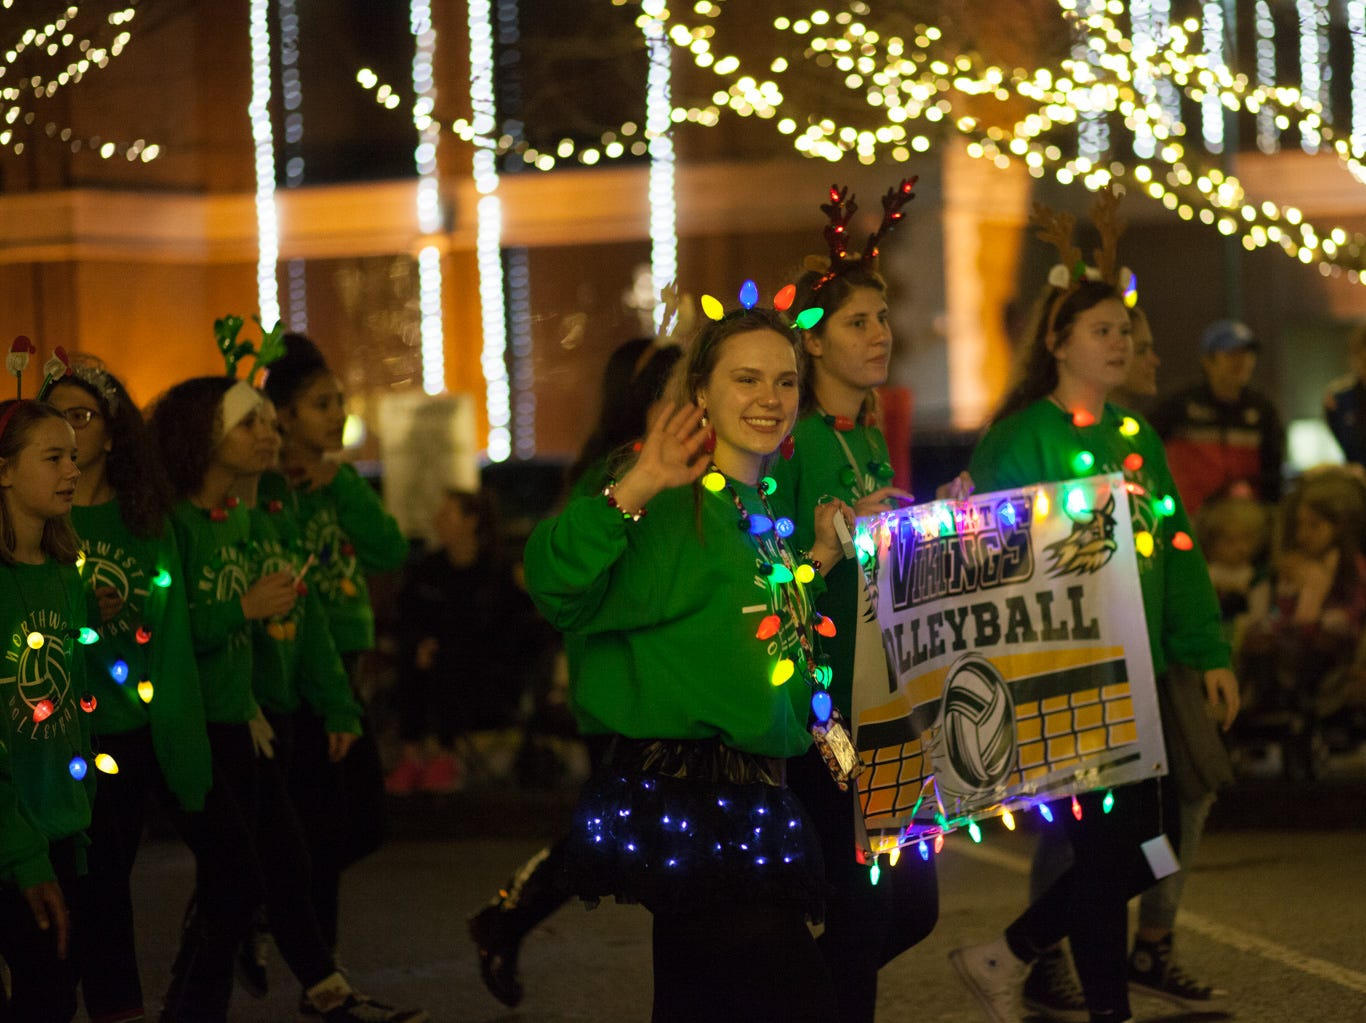 The annual Christmas Parade moved through Downtown Clarksville on Saturday, Dec. 1, 2018 in Clarksville, Tenn.